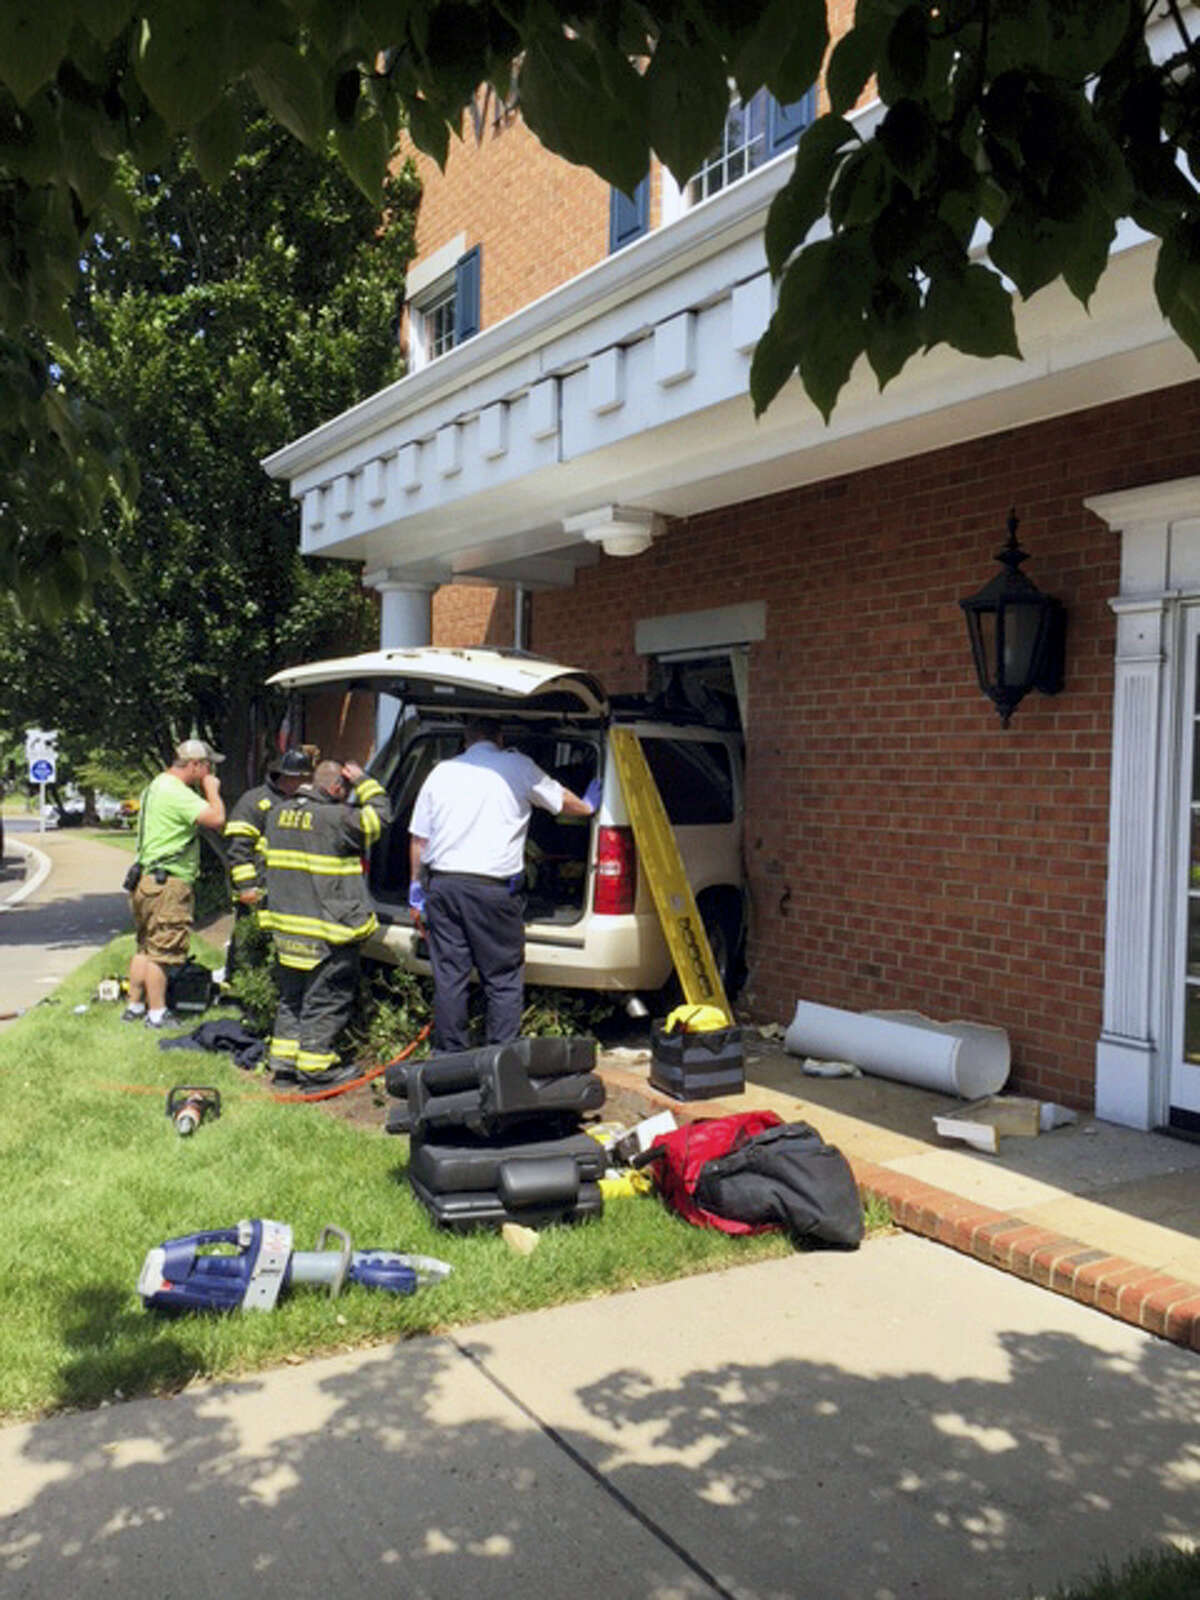 First responders work at the scene of an automobile accident in Red Bank, N.J. Former Red Sox and Mets infielder John Valentin and his mother were injured when the SUV he was driving crashed into the building used by Visiting Nurse Association.